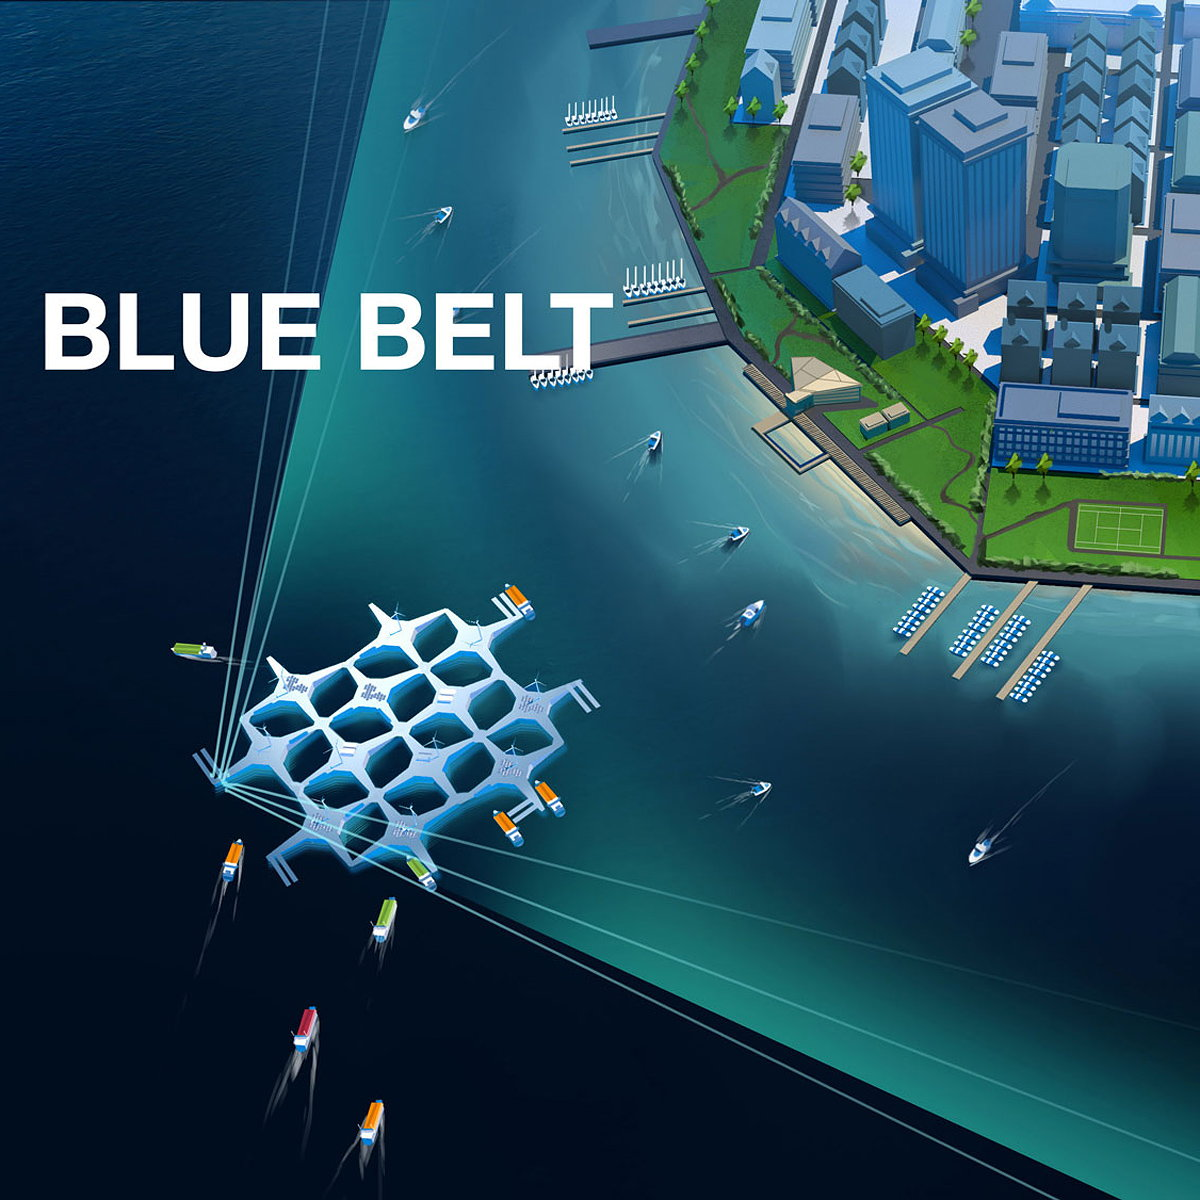 Oceanic Awakening - Designers Unite to save the Ocean and Concept the Cities of Tomorrow